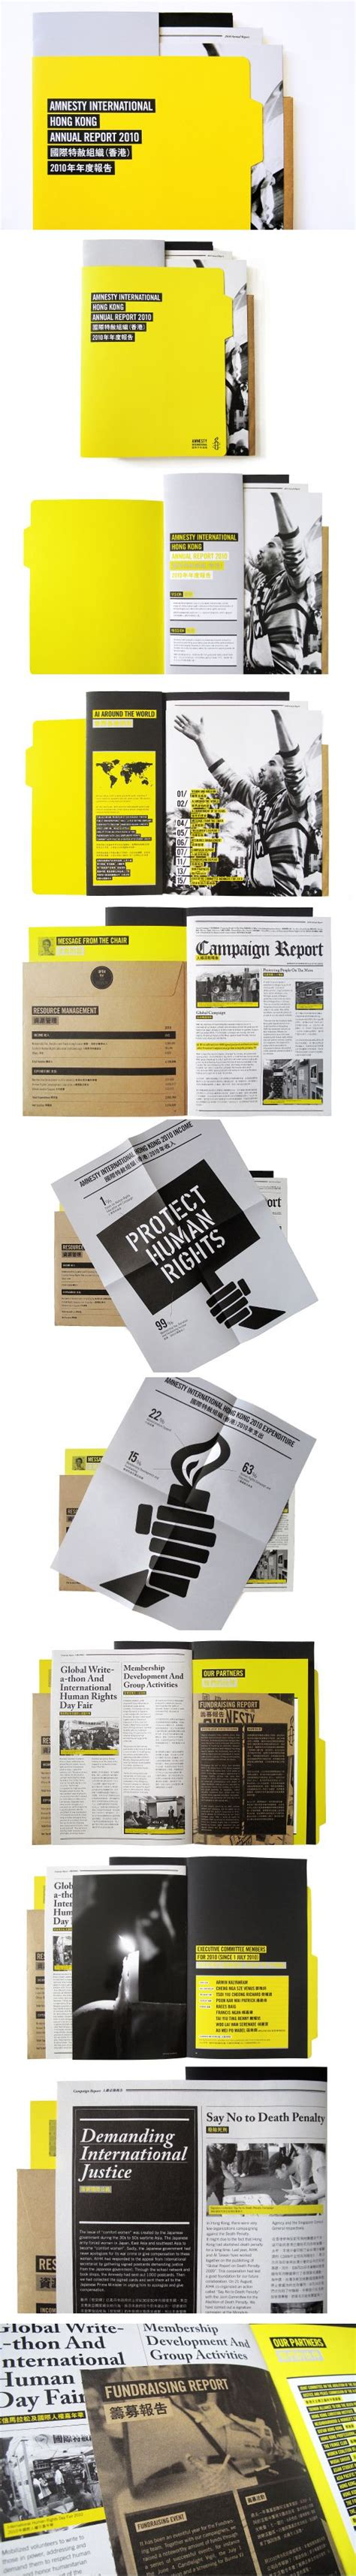 leaflet design hong kong 198 best annual report layouts images on pinterest